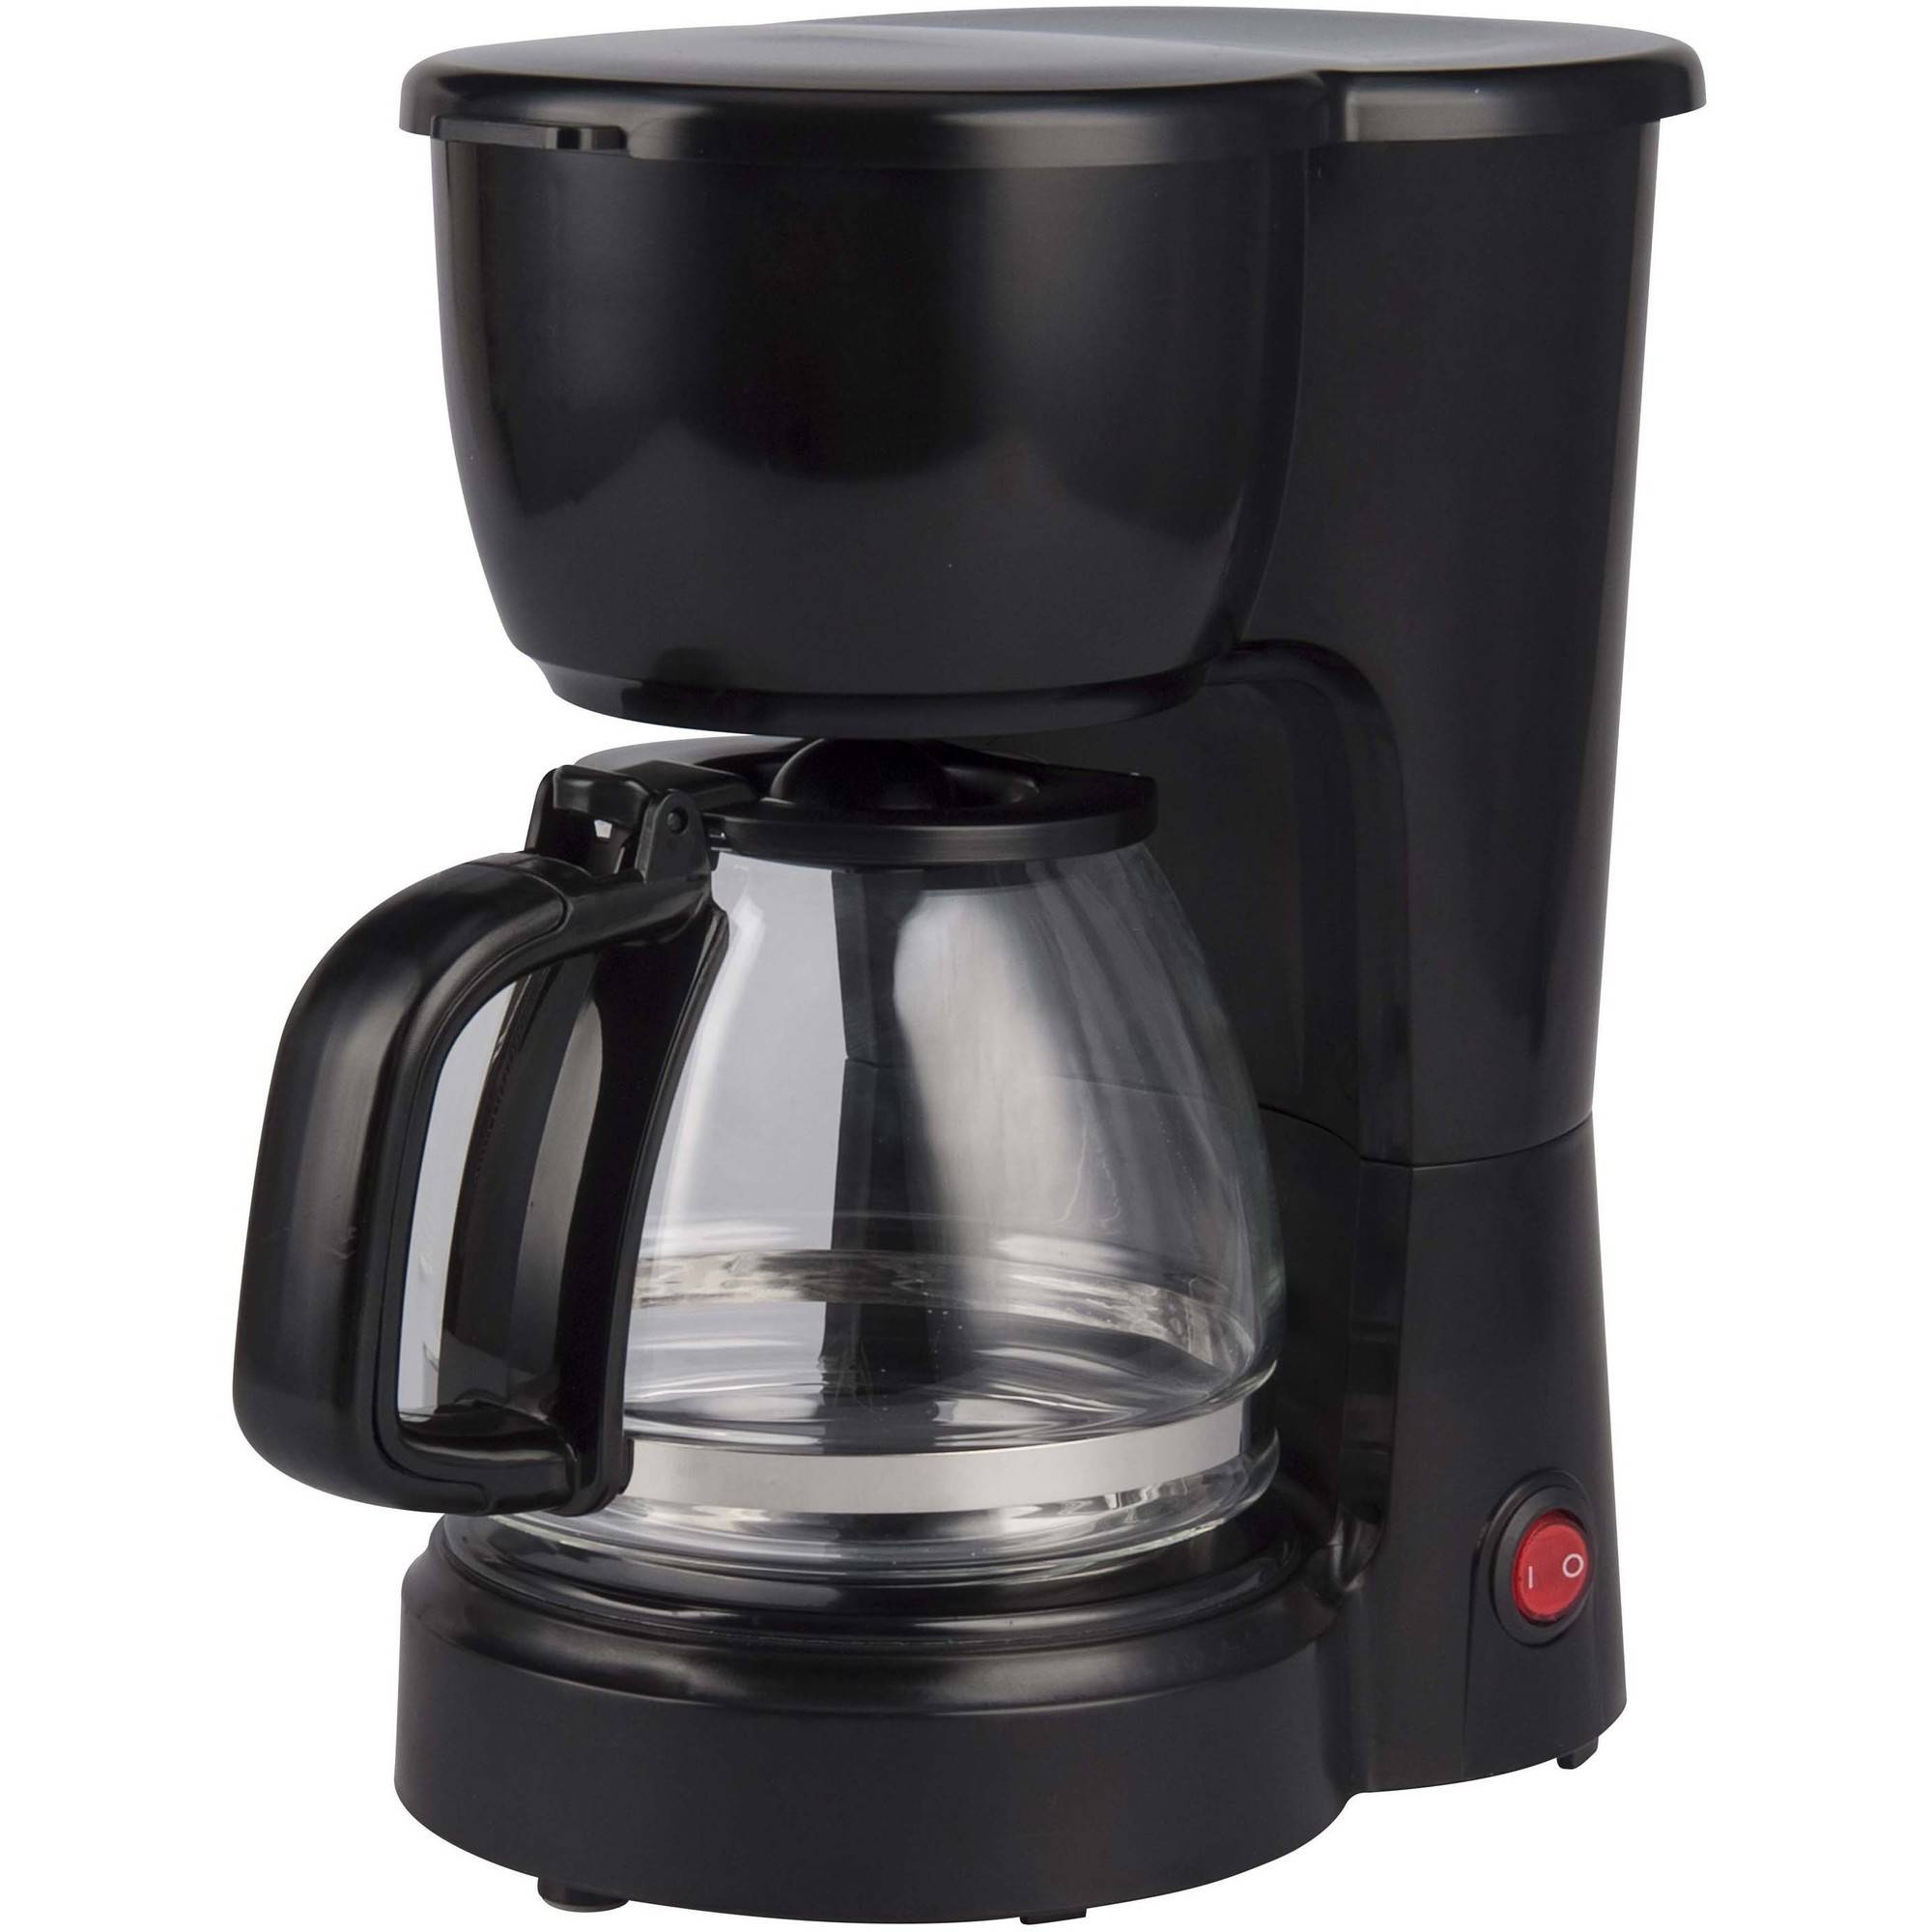 Mainstays 5-Cup Coffee Maker